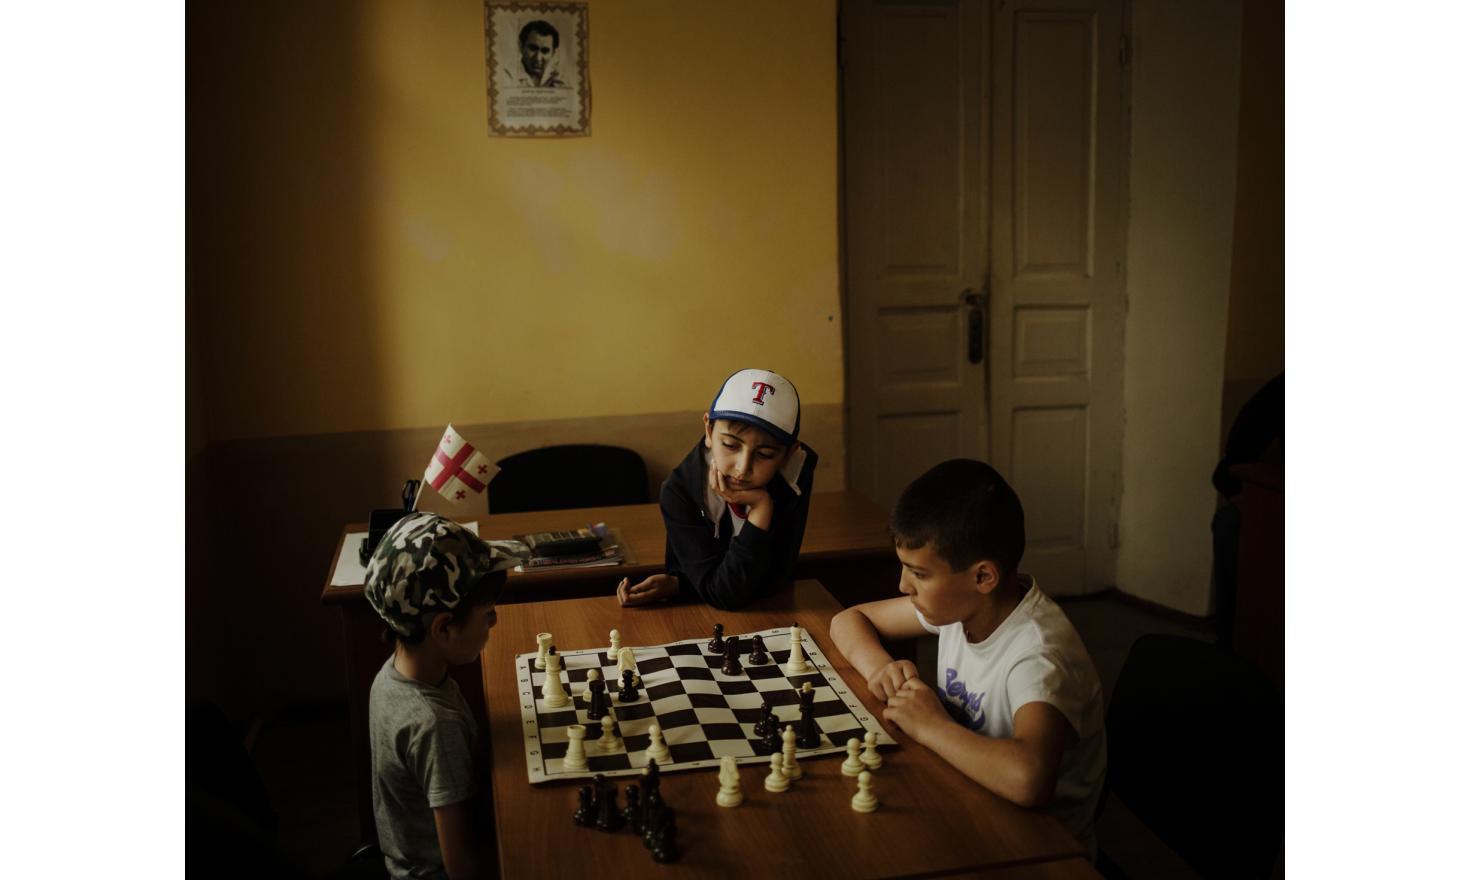 Akhalkalaki. In a chess course for the Armenian community. Chess is a kind of national sport for Armenians. In Armenia it is taught at school like mathematics or history.